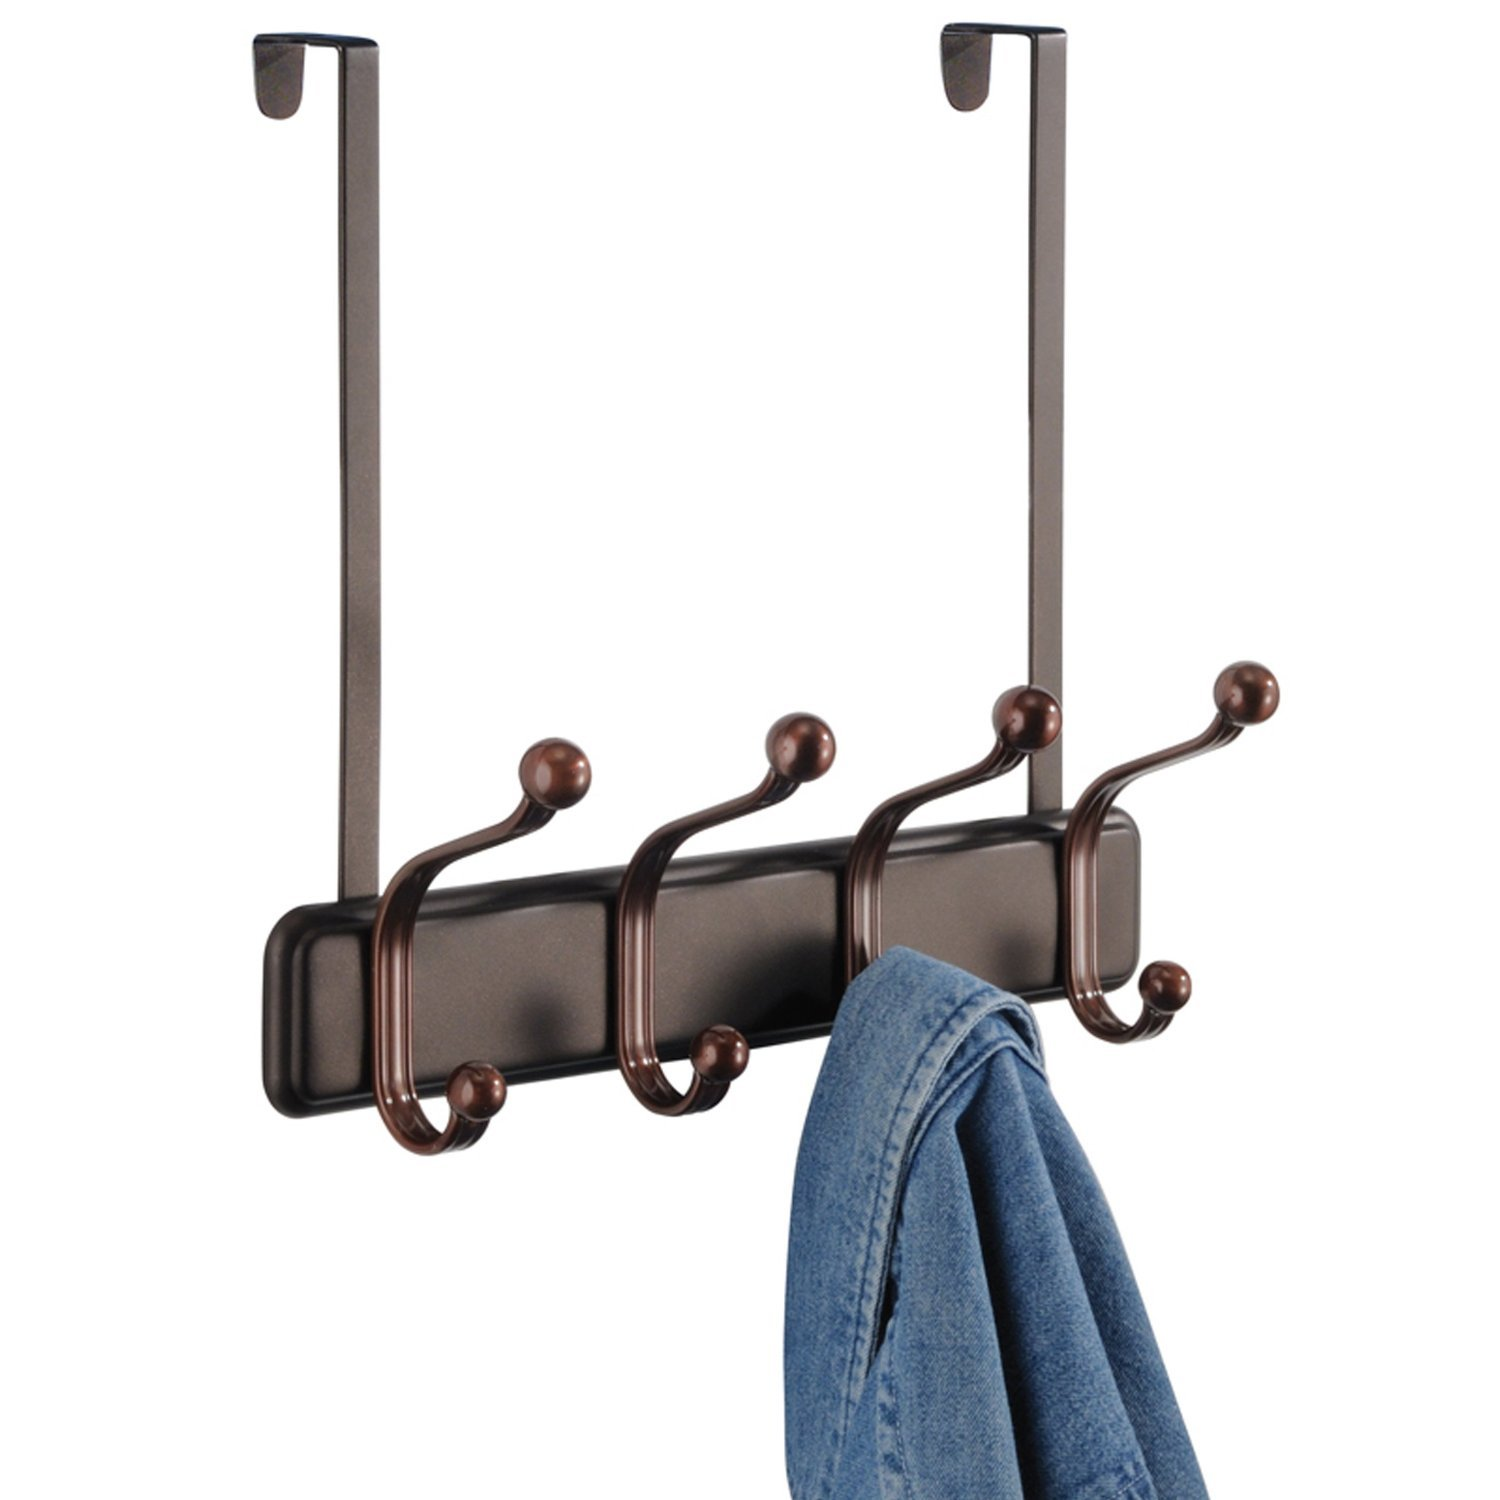 Amazon.com: InterDesign York Over Door Storage Rack U2013 Organizer Hooks For  Coats, Hats, Robes, Clothes Or Towels U2013 4 Dual Hooks, Two Tone Bronze: Home  U0026 ...